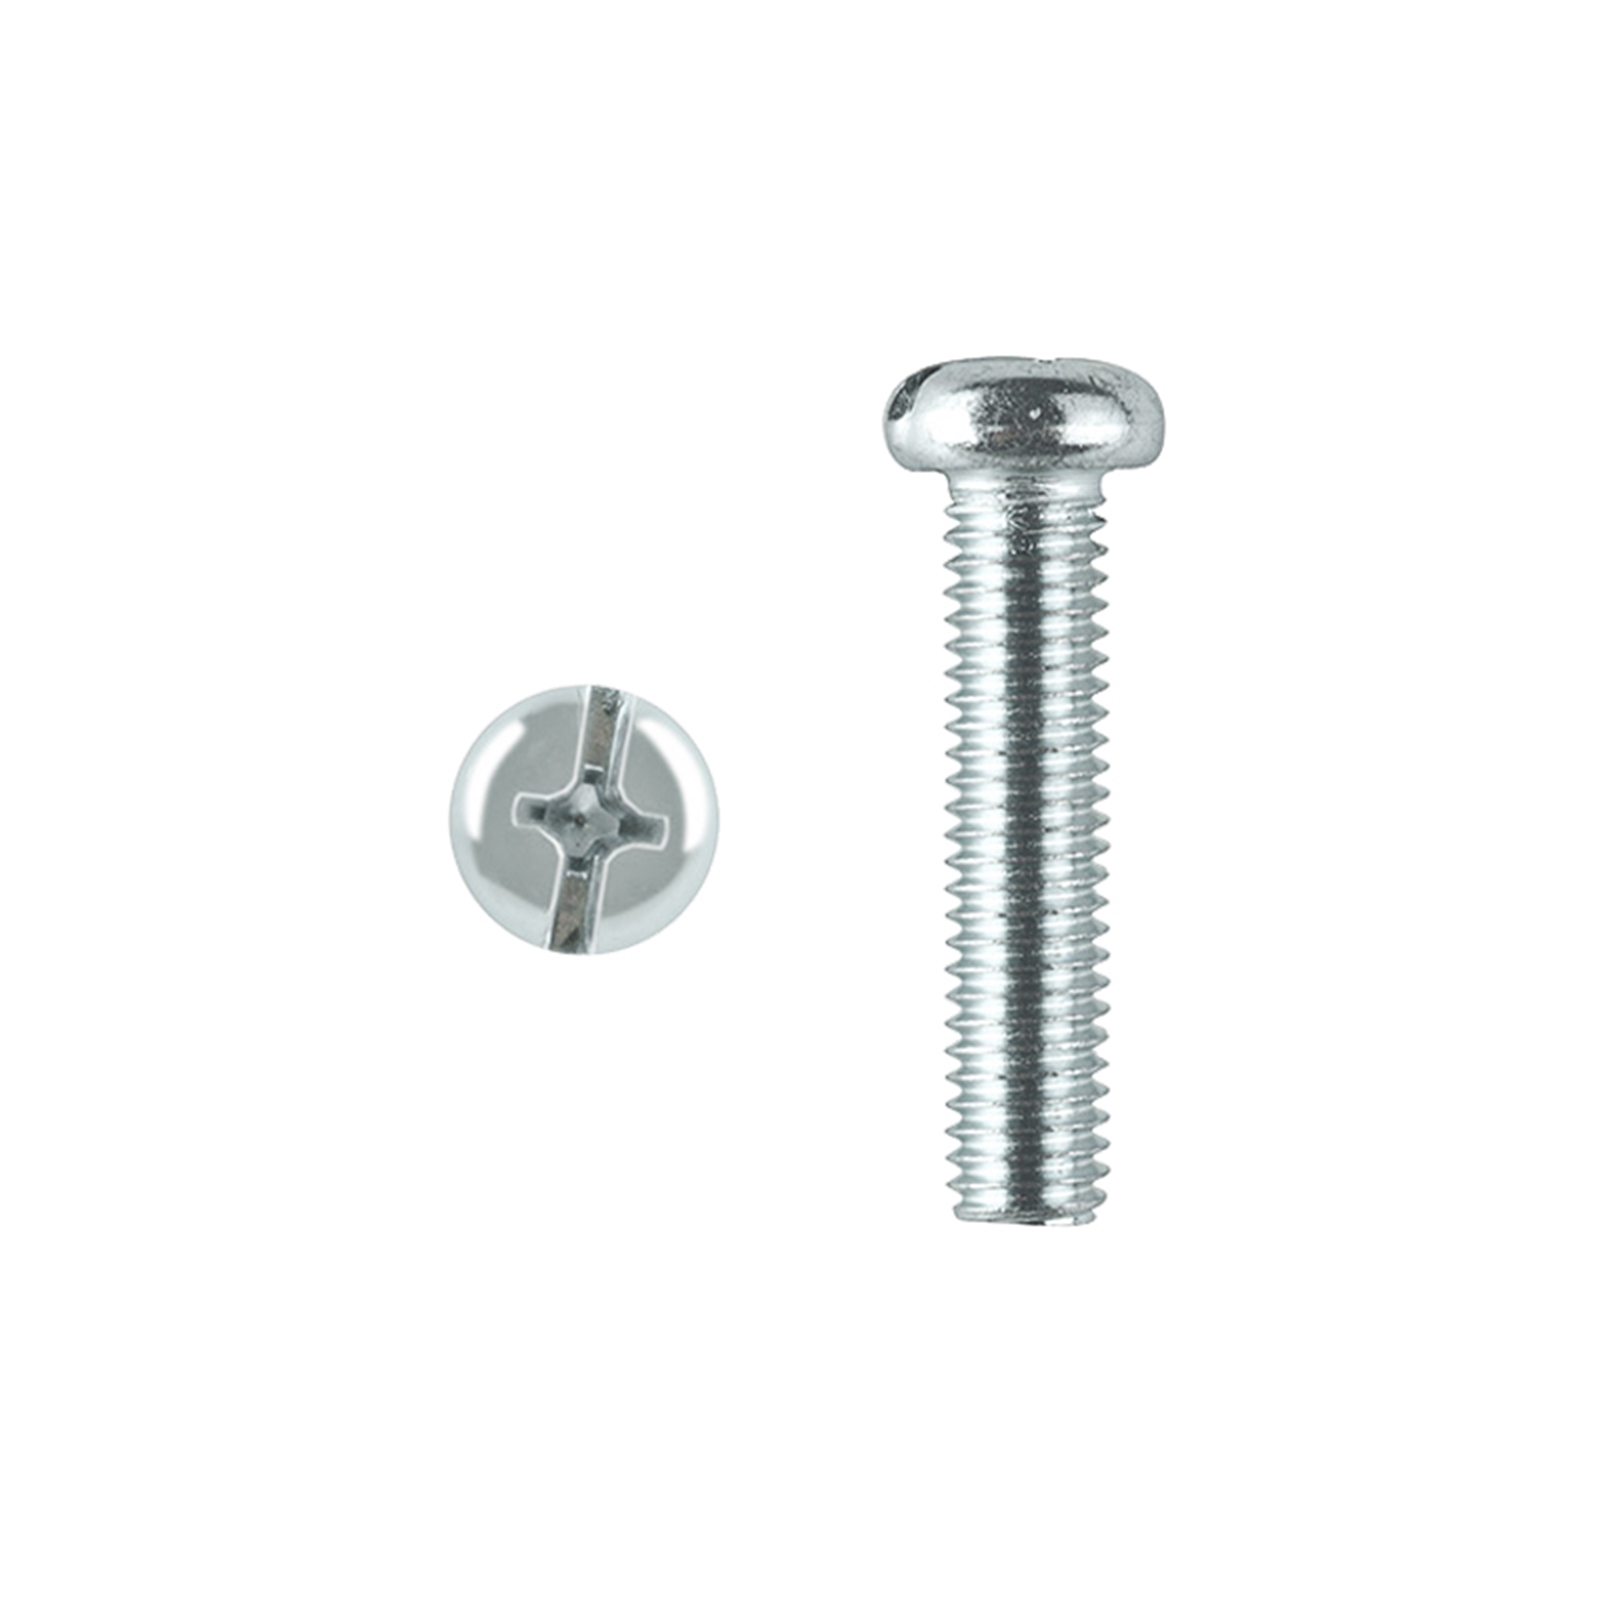 Pinnacle M8 x 65mm Zinc Plated Round Head Bolts And Nuts - 2 Pack